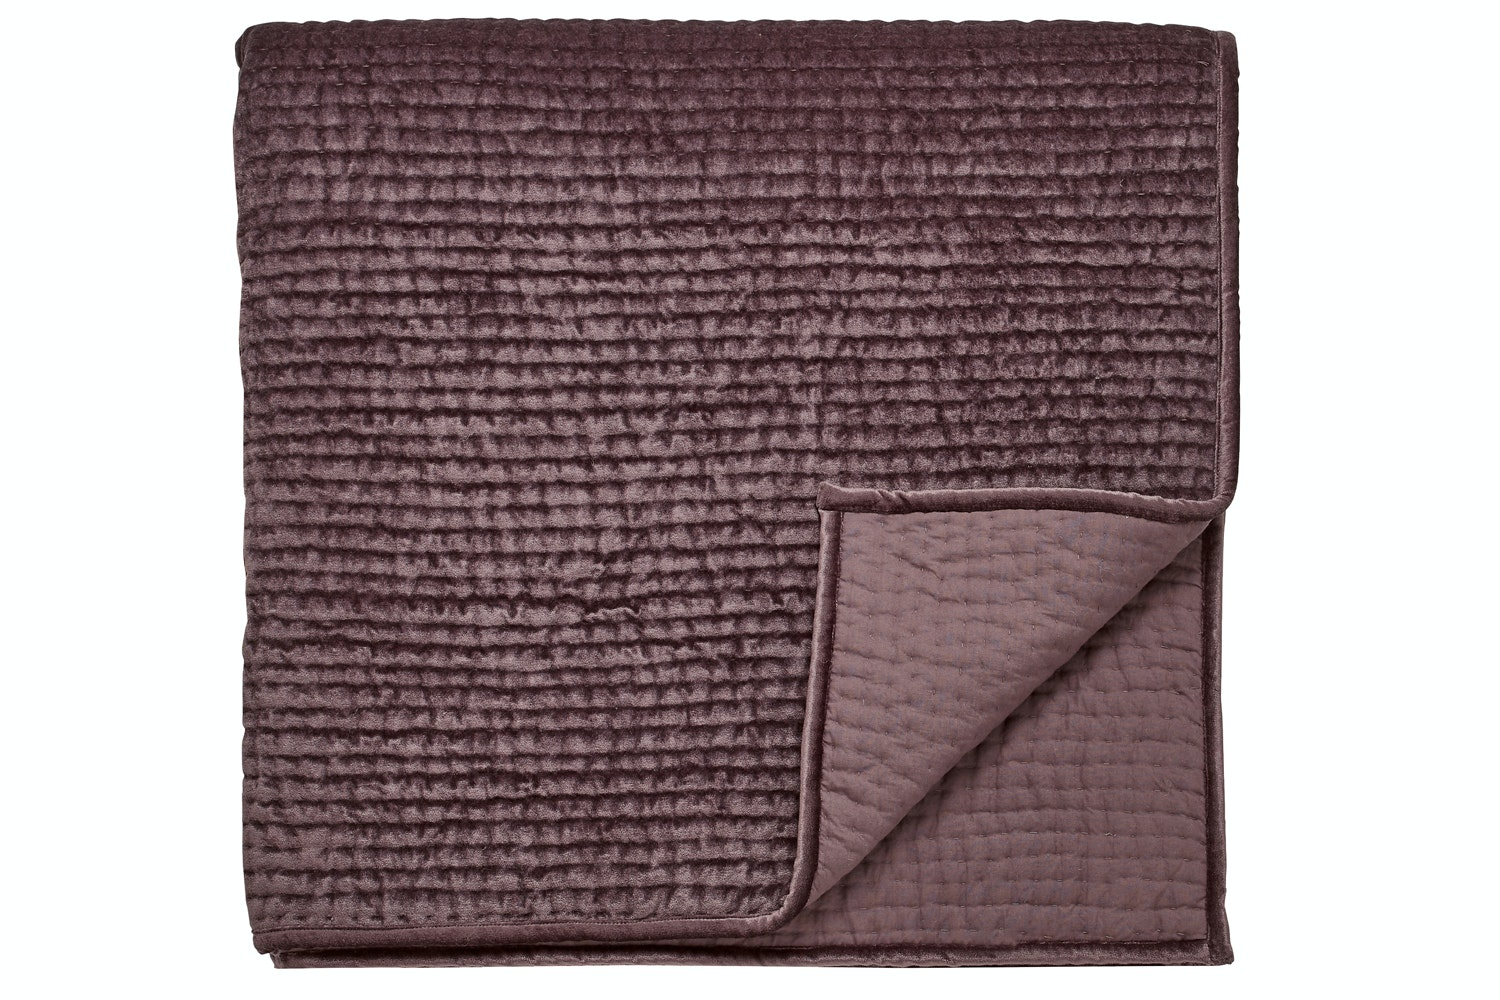 Ellora Amethyst Throw | 150x200cm